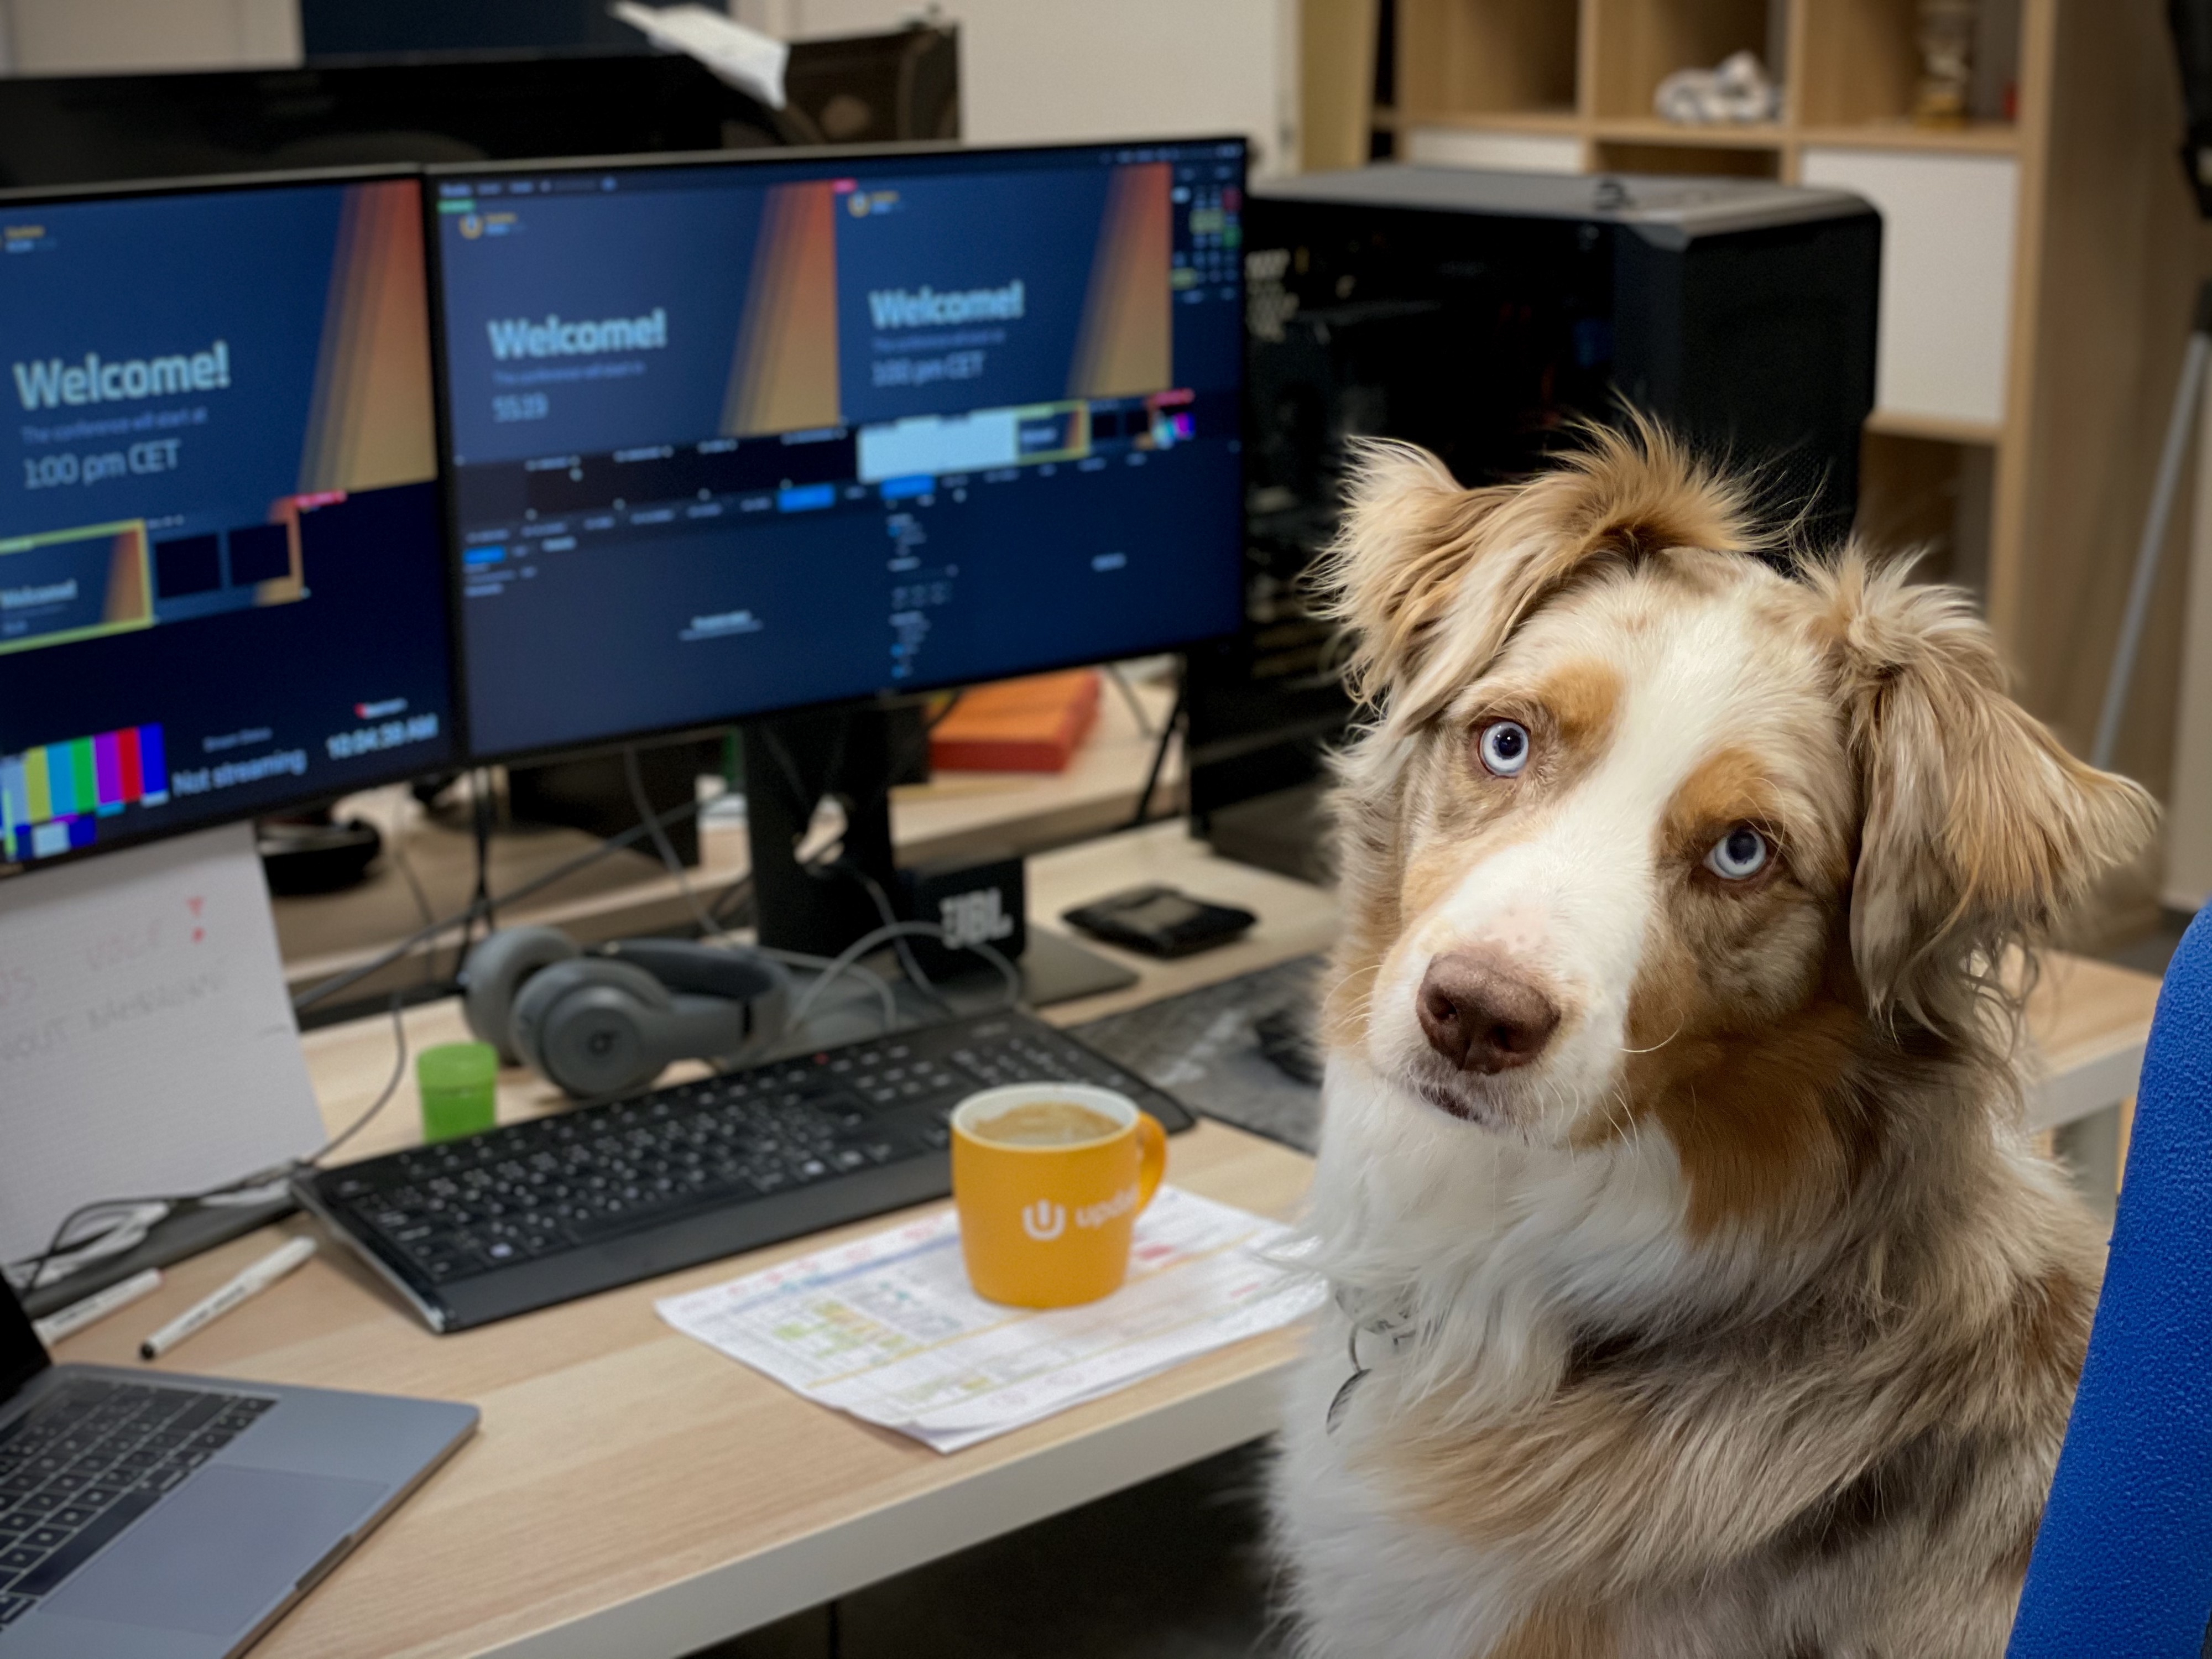 Dog sitting in front of computer monitors, turned to look at the camera